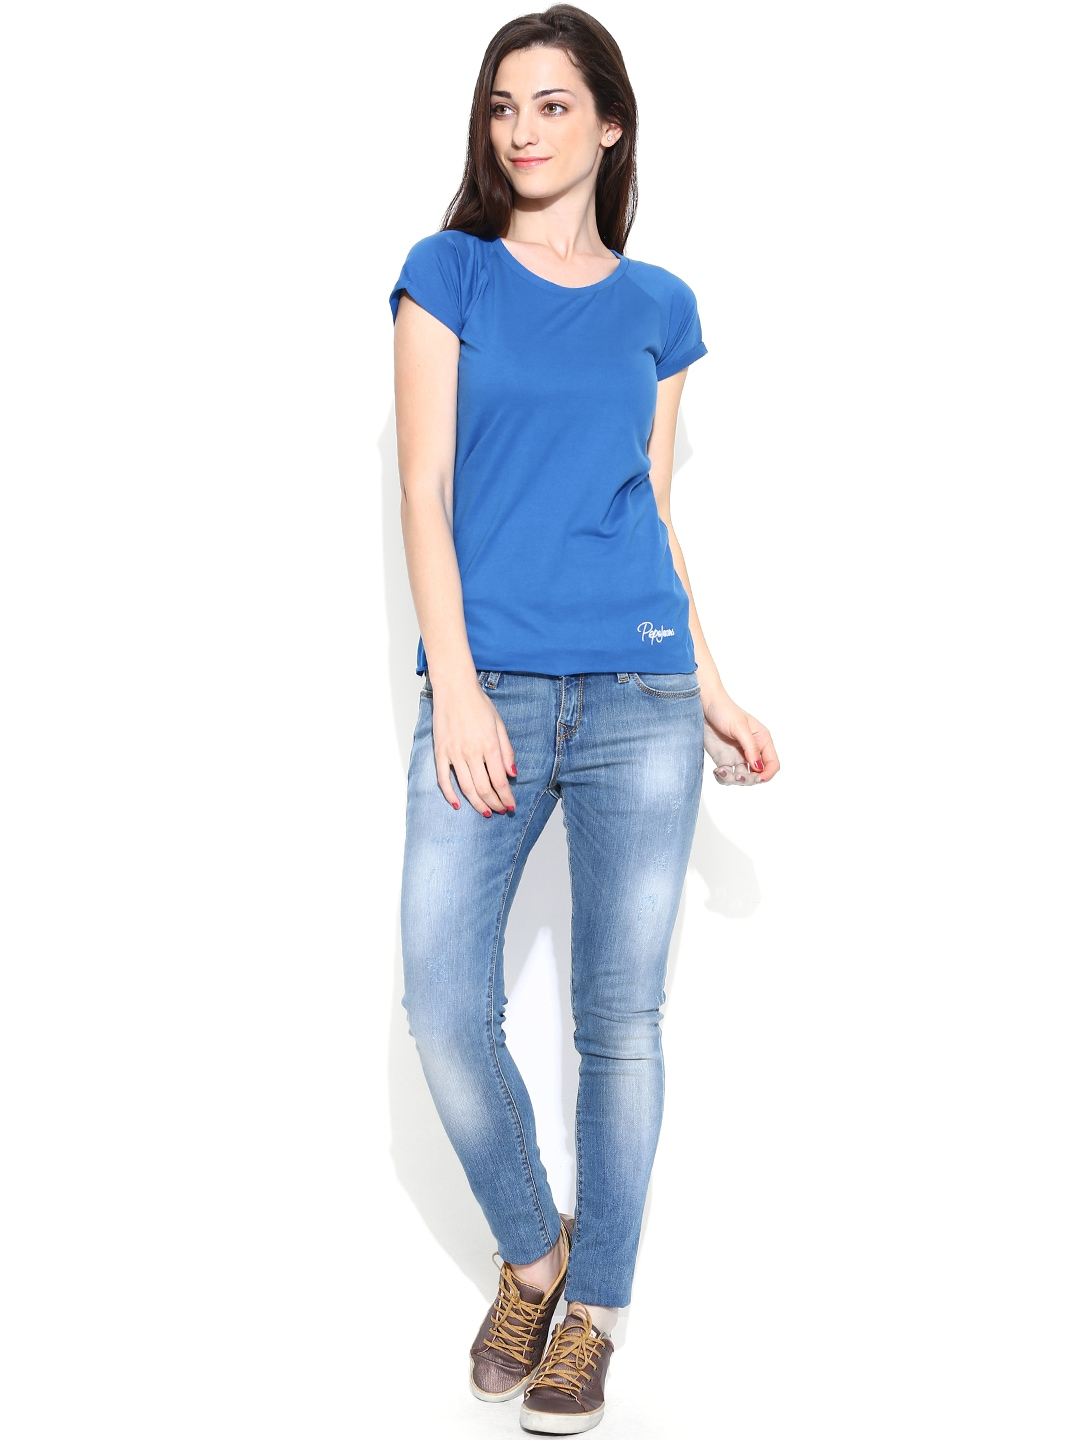 Myntra pepe jeans women blue t shirt 699637 buy myntra for Jeans shirt for ladies online